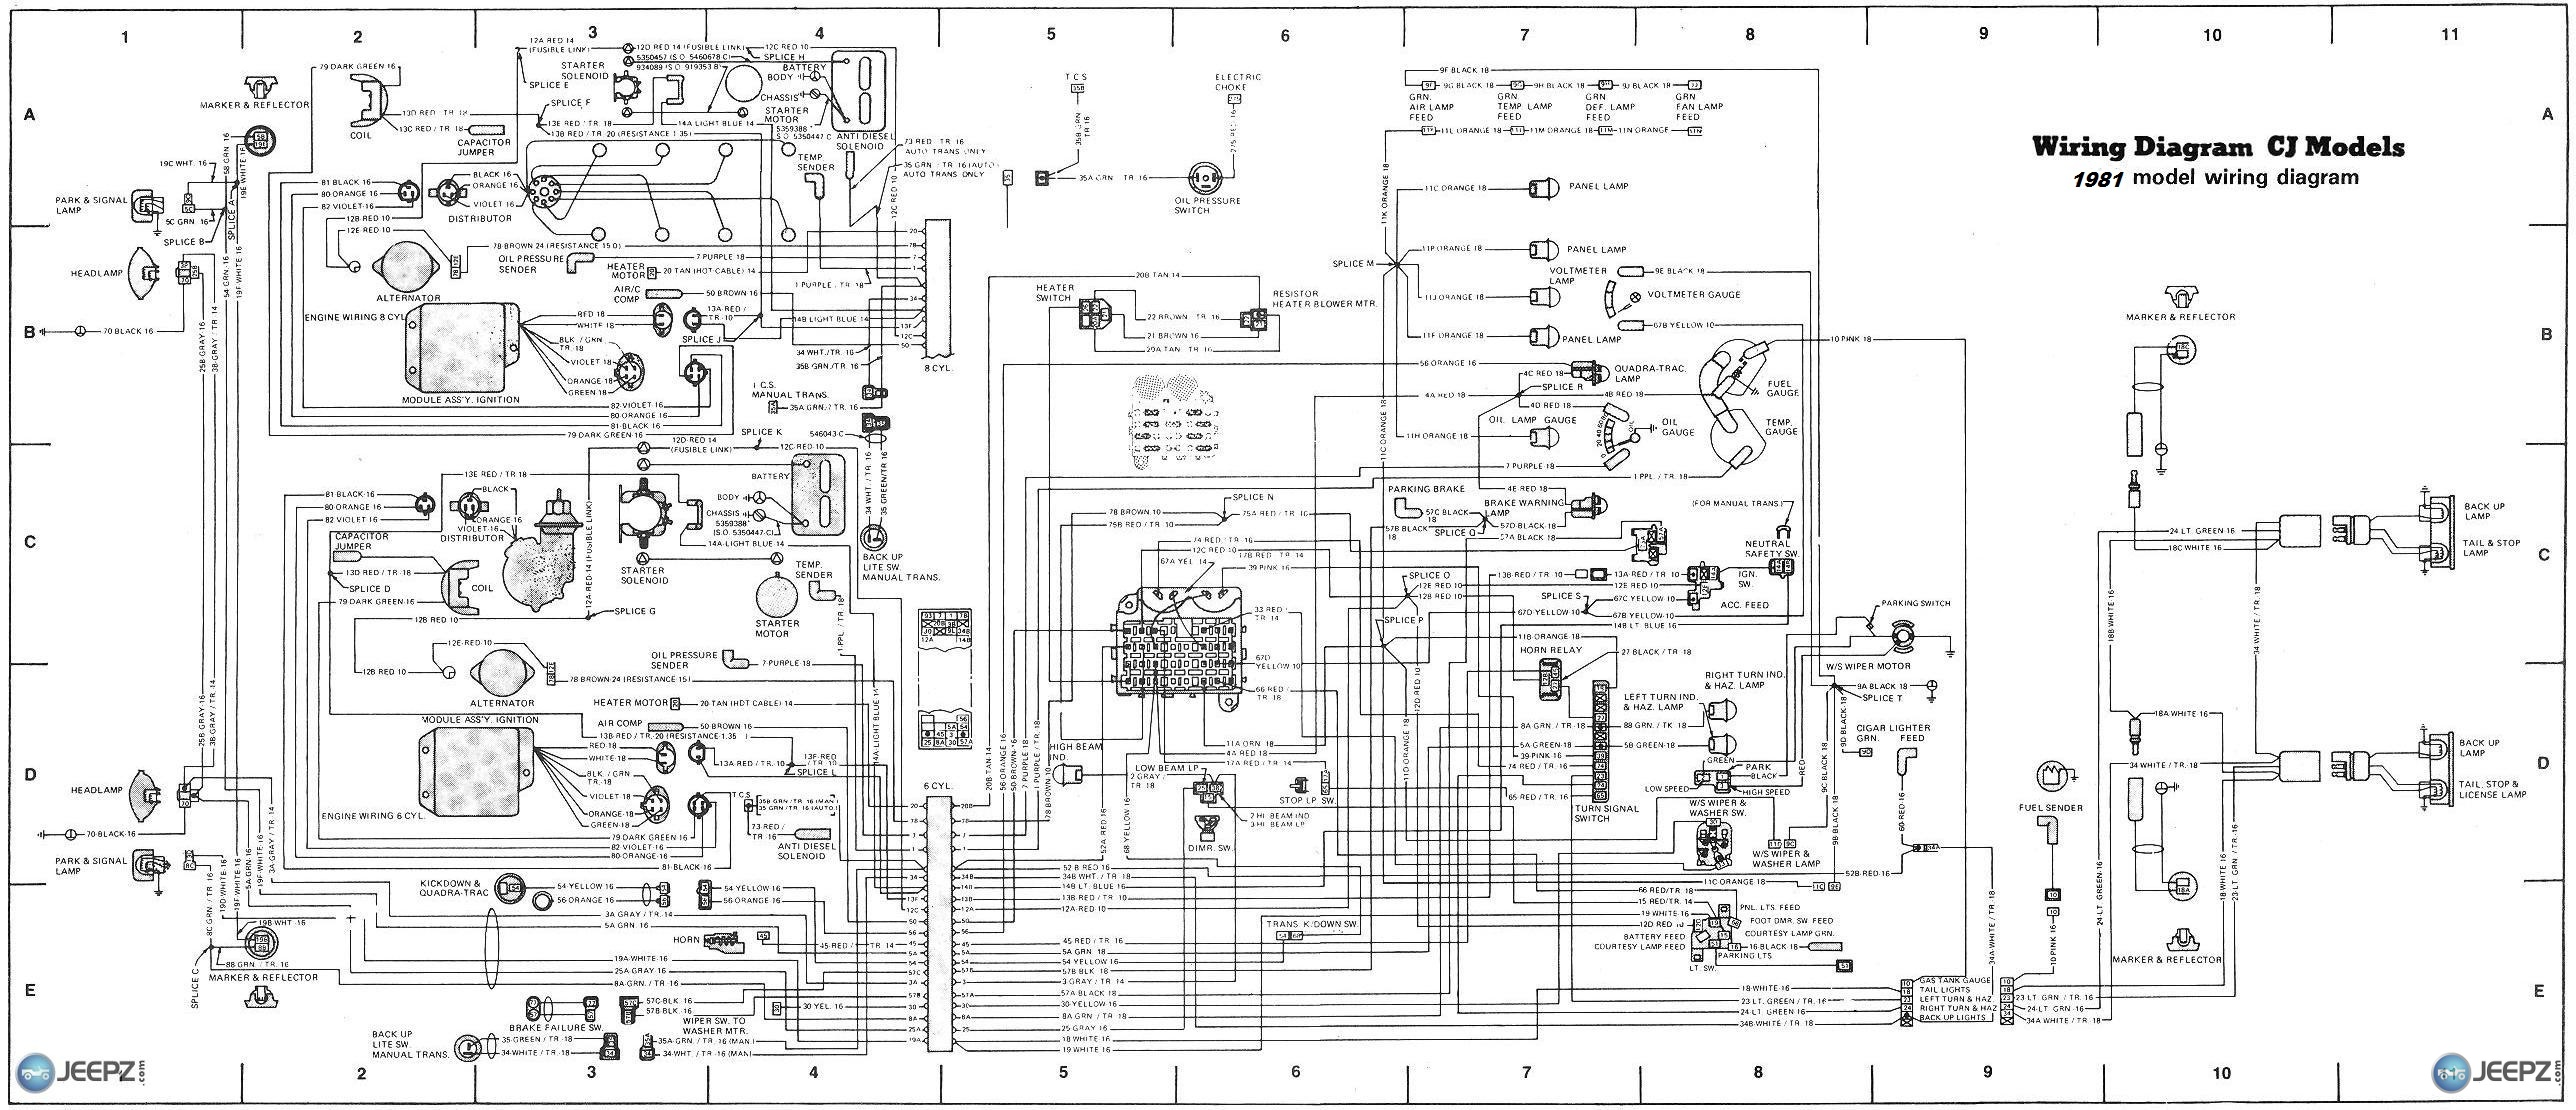 Fuse Box 91 Cadillac Brougham Jeep Wrangler Block Diagram Wiring Library 1991 Auto Electrical Rh Mit Edu Uk Hardtobelieve Me